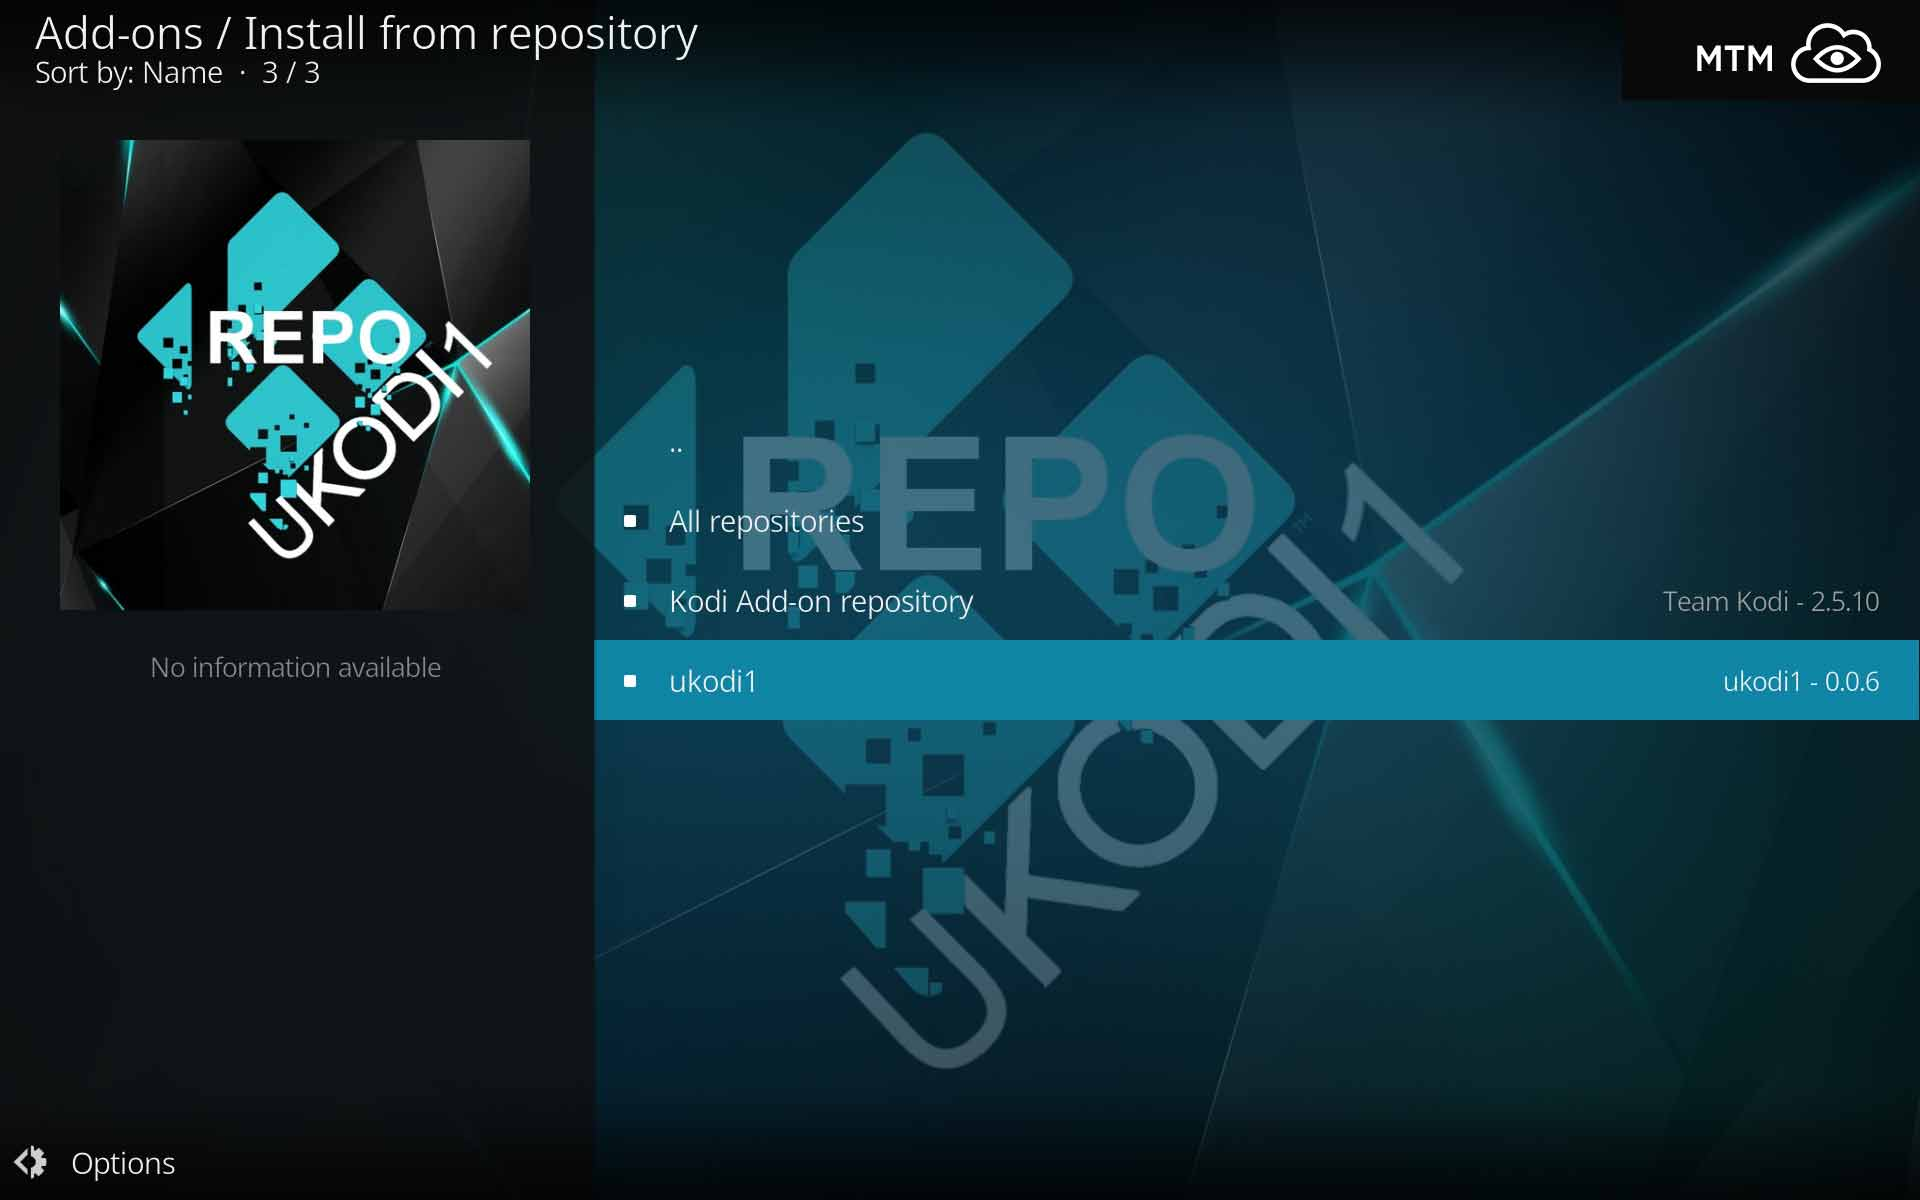 How to Install WOW Combined Kodi Addon from UKodi1 Repo